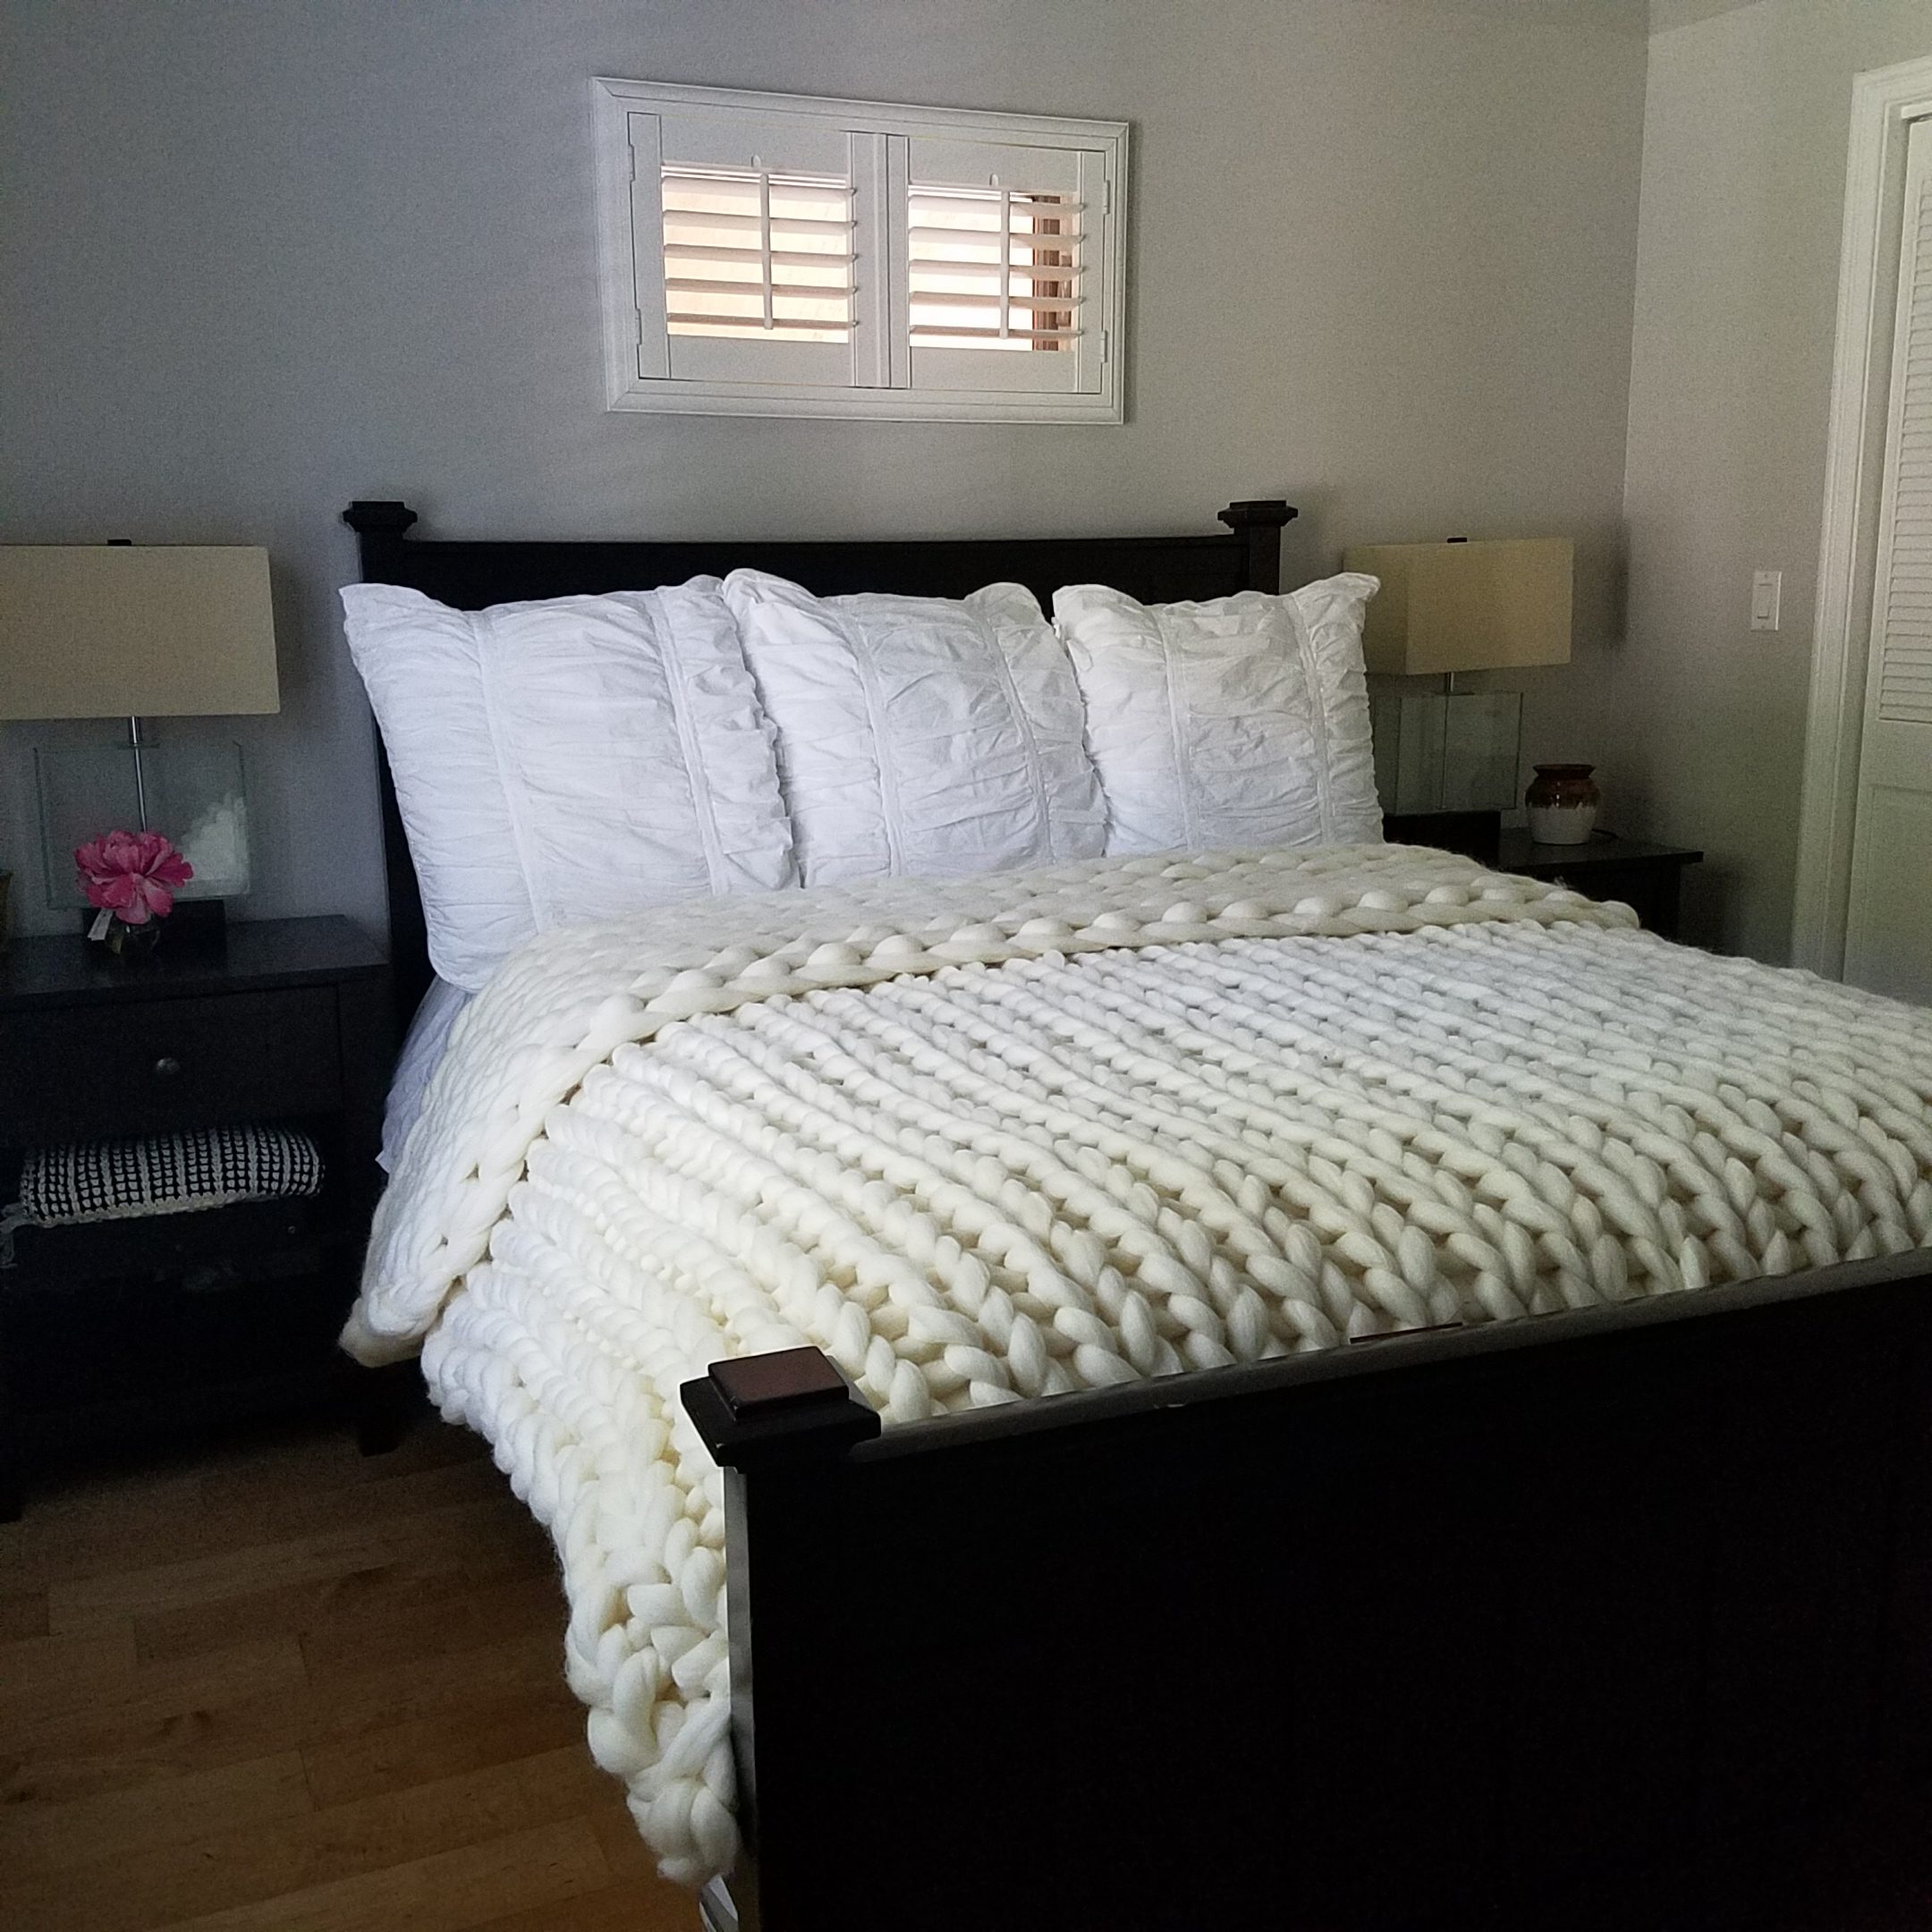 ivory chunky knit throw blanket guest bedroom home decor angela lanter hello gorgeous